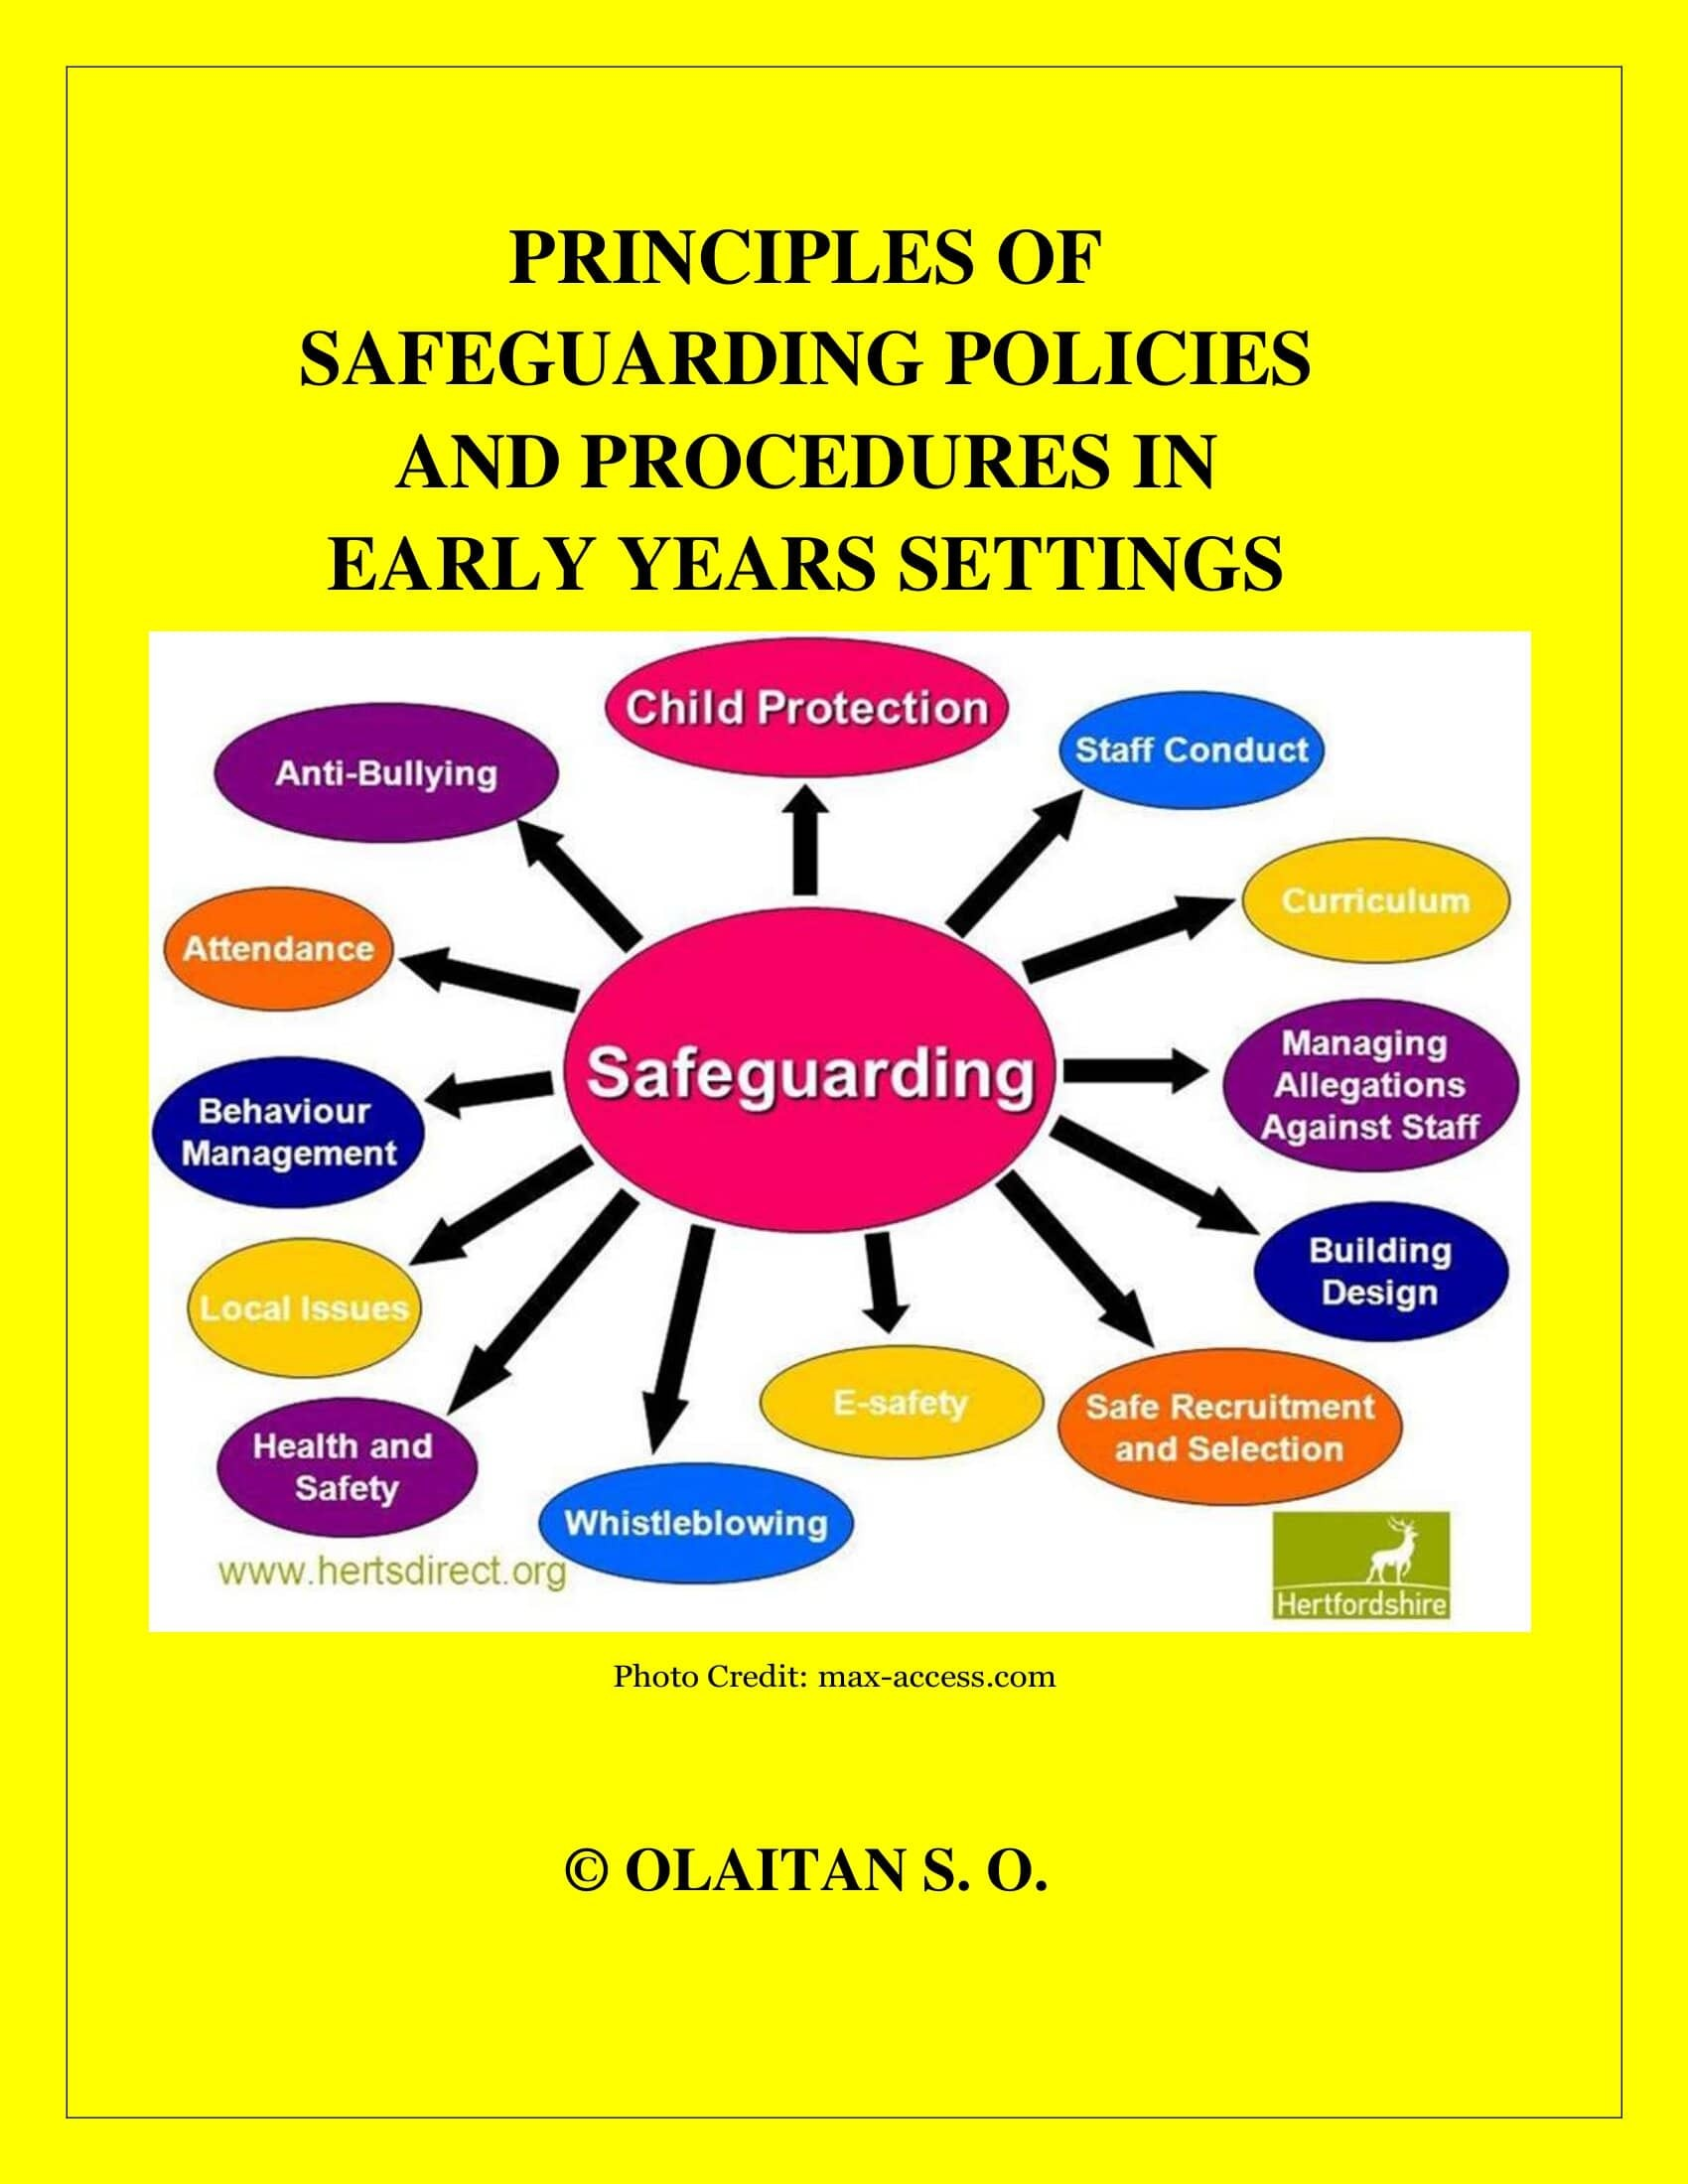 PRINCIPLES OF SAFEGUARDING POLICIES AND PROCEDURES IN EARLY YEARS